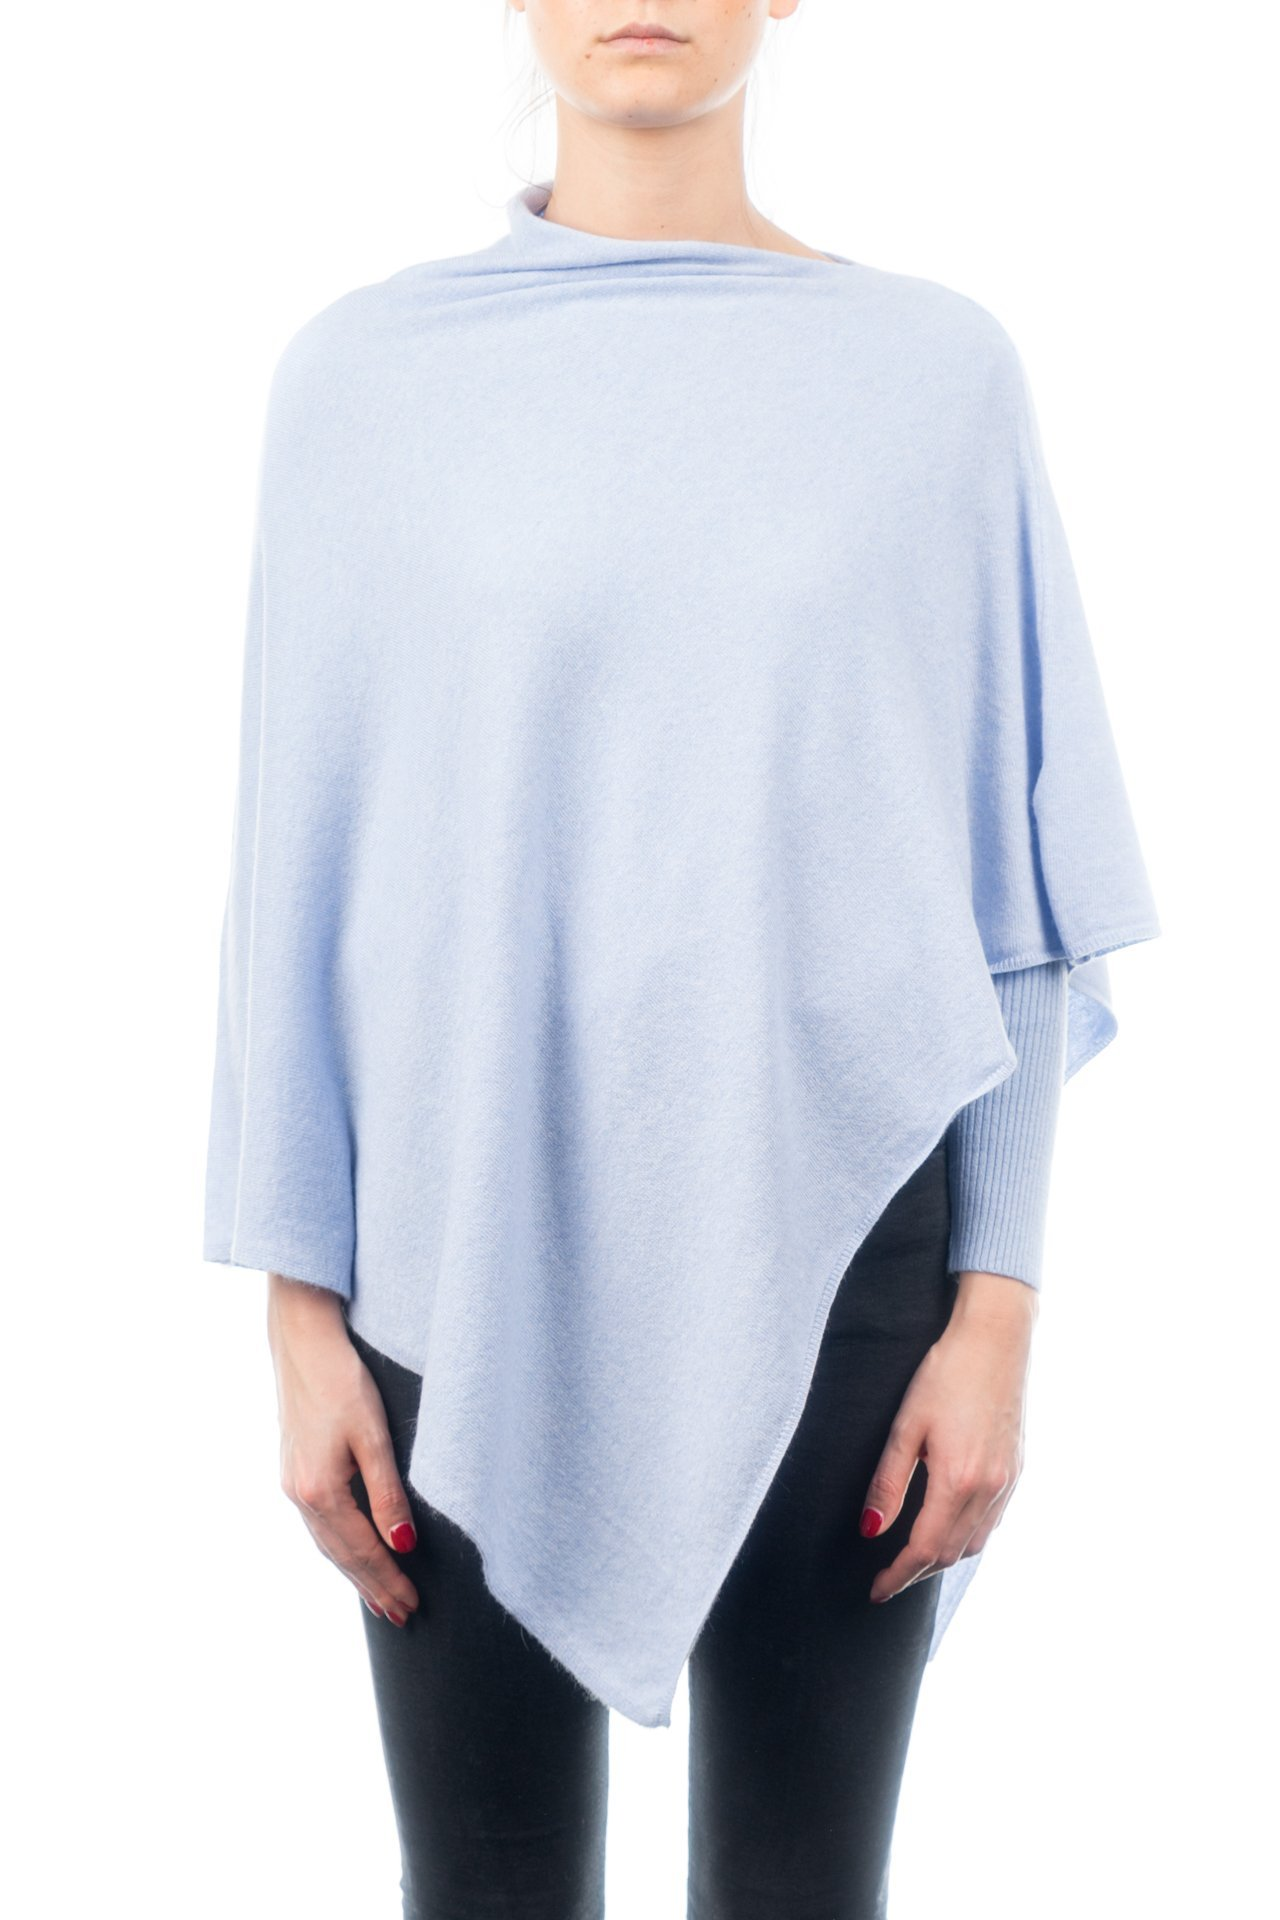 DALLE PIANE CASHMERE - Poncho Cashmere Blend - Made in Italy, Color: Sky, One Size